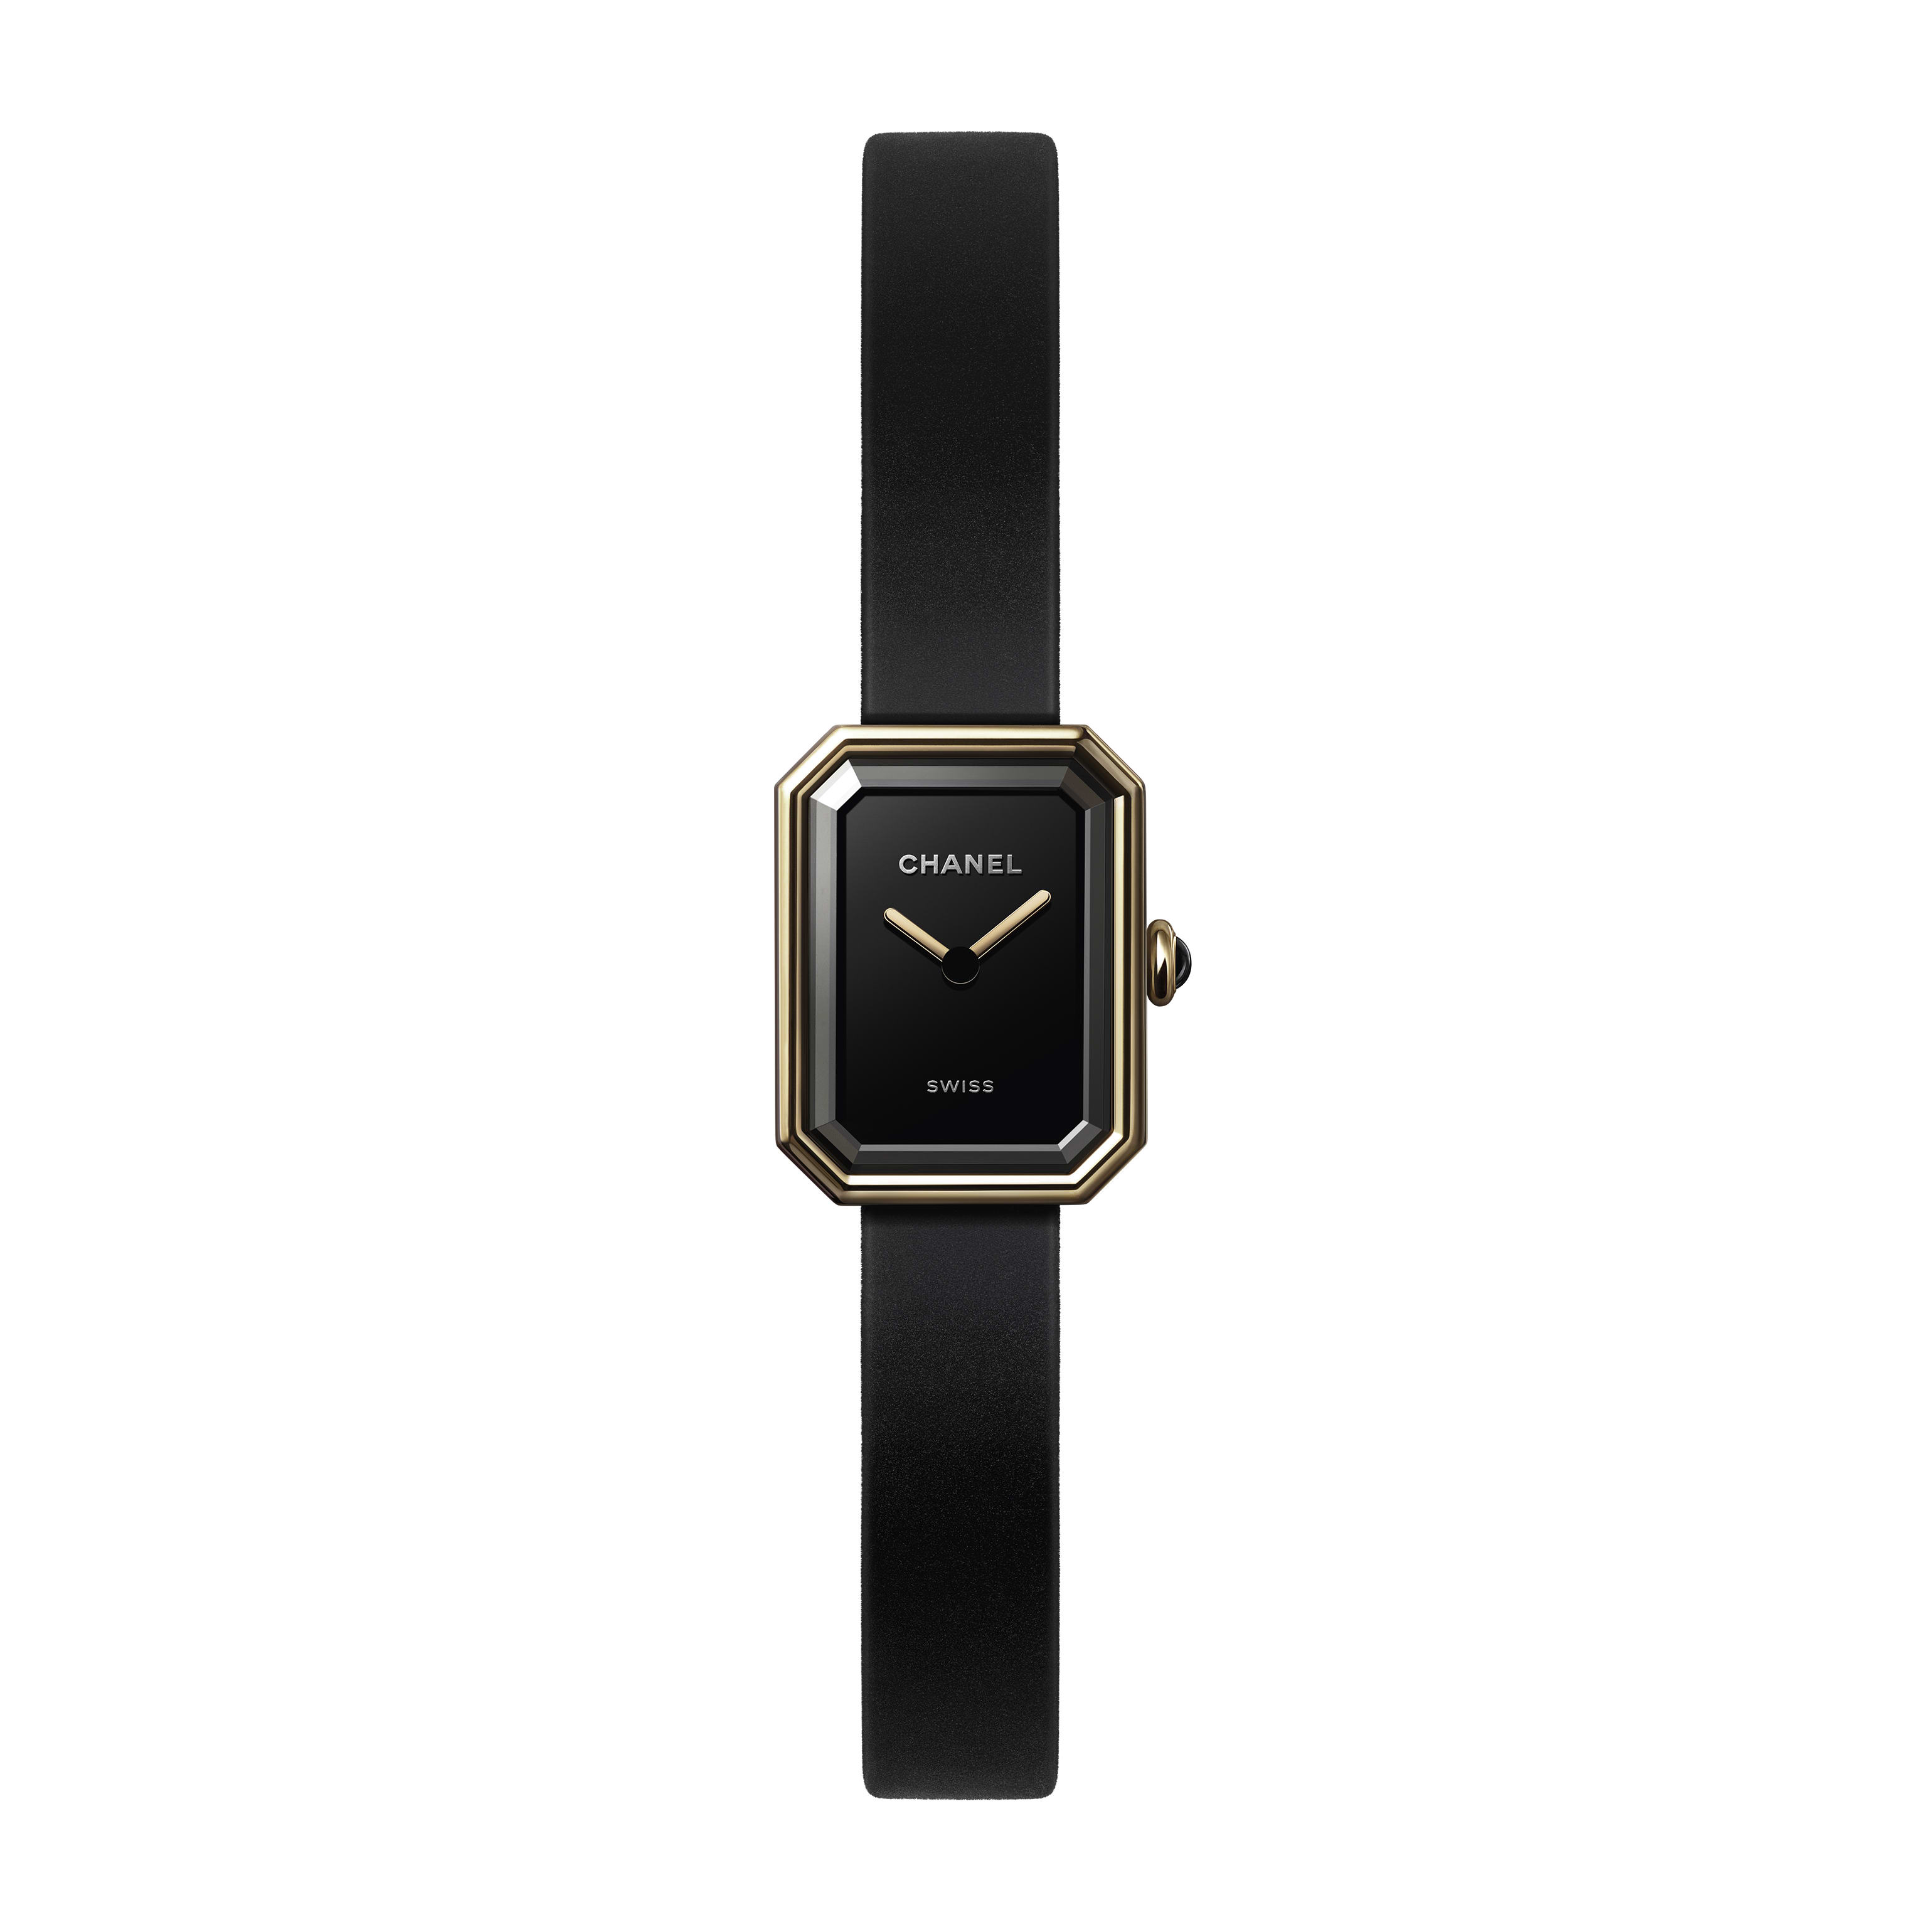 Première Velours Watch - Yellow gold and titanium, black rubber strap with velvet touch, black-lacquered dial - CHANEL - Default view - see standard sized version